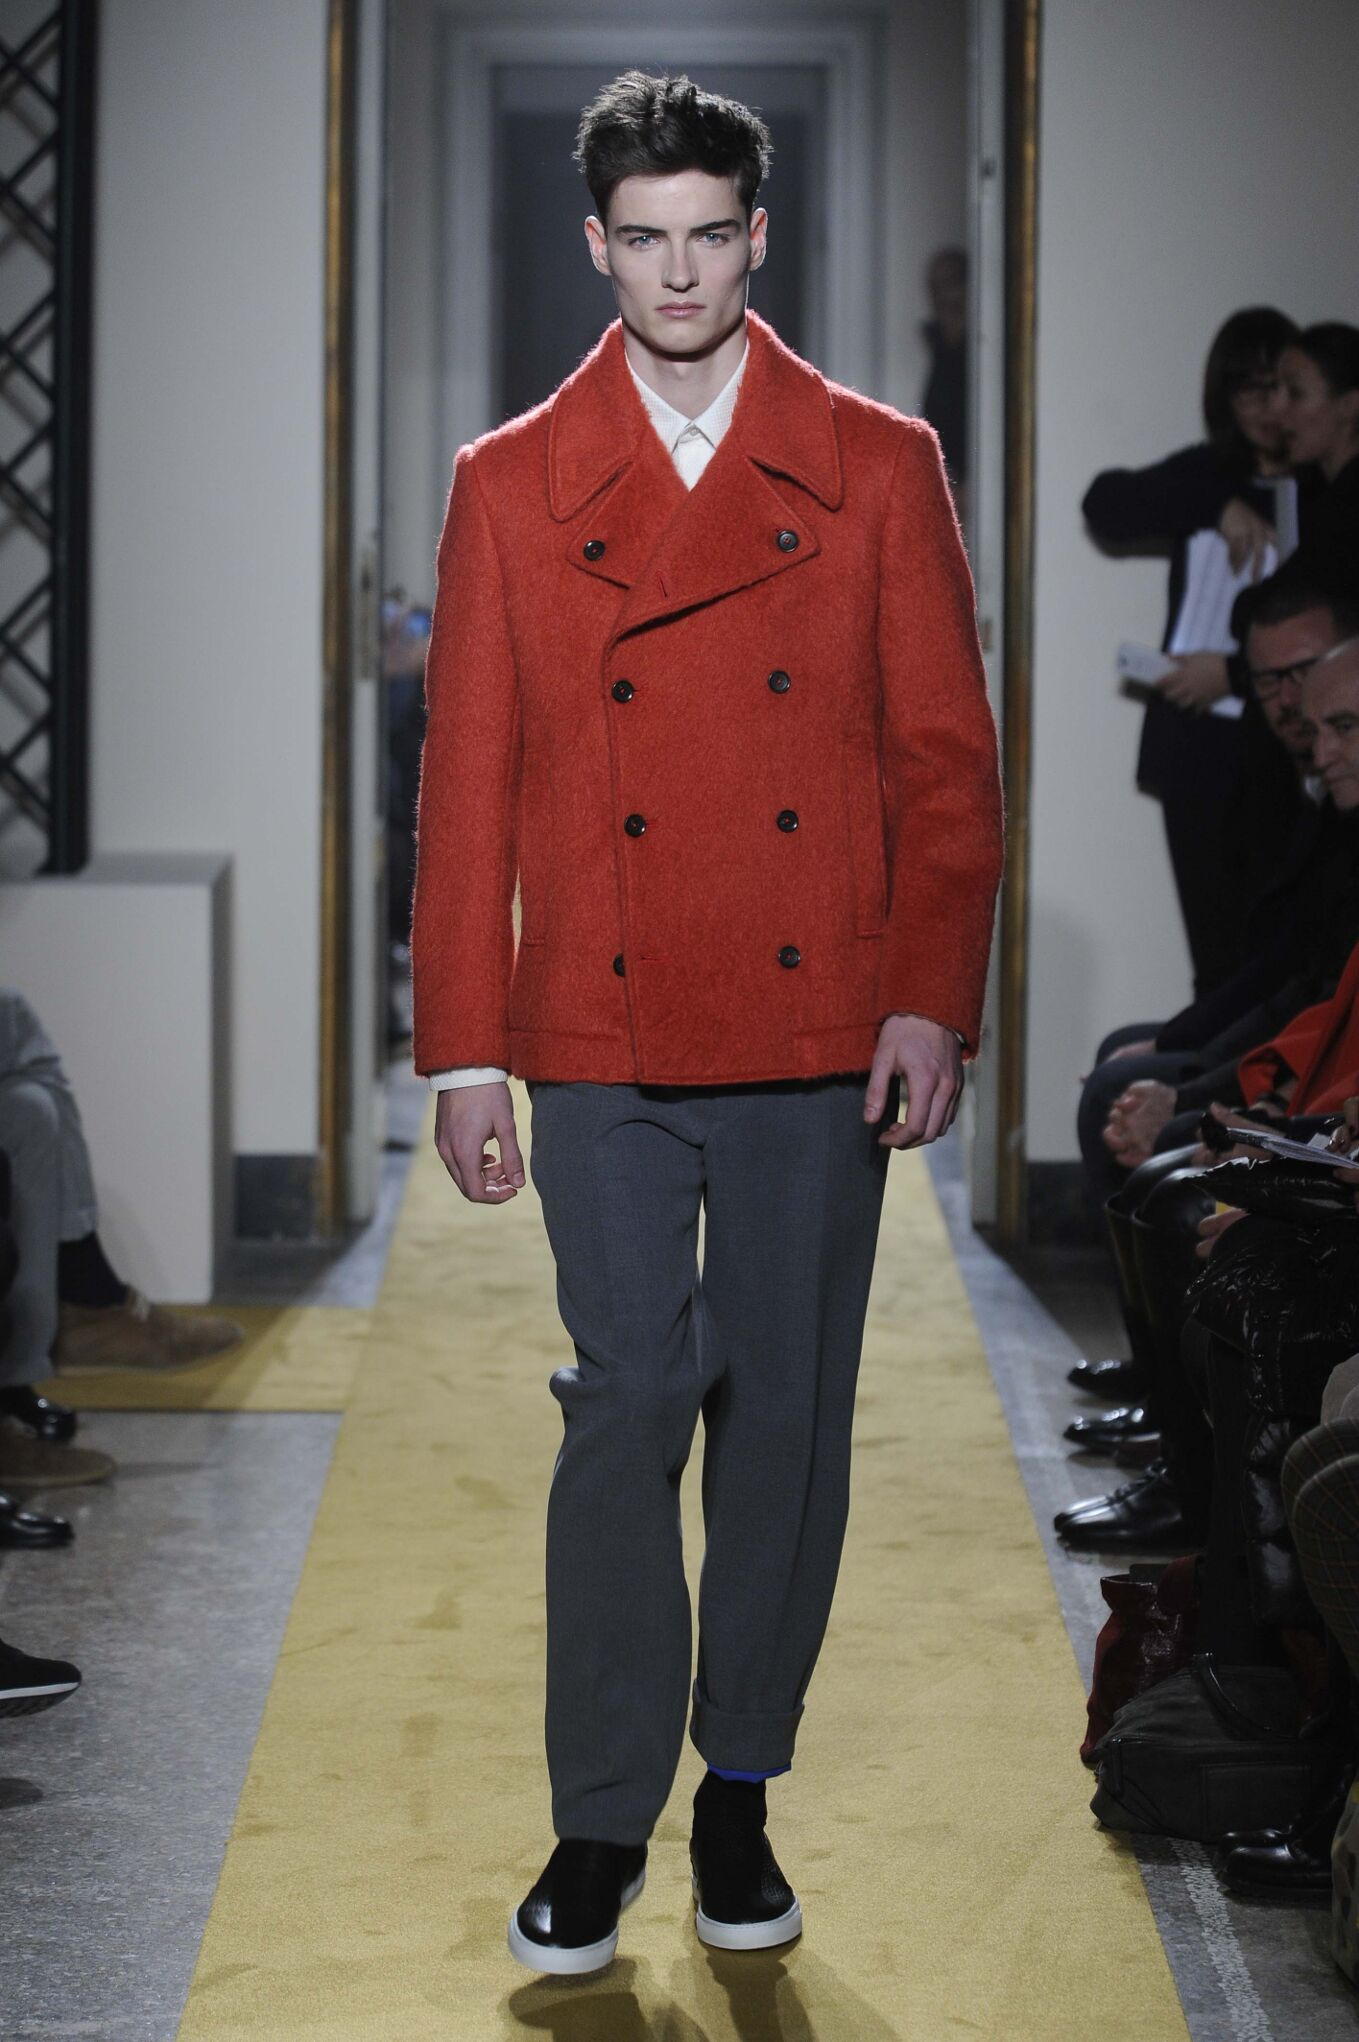 Andrea Incontri Fall Winter 2014